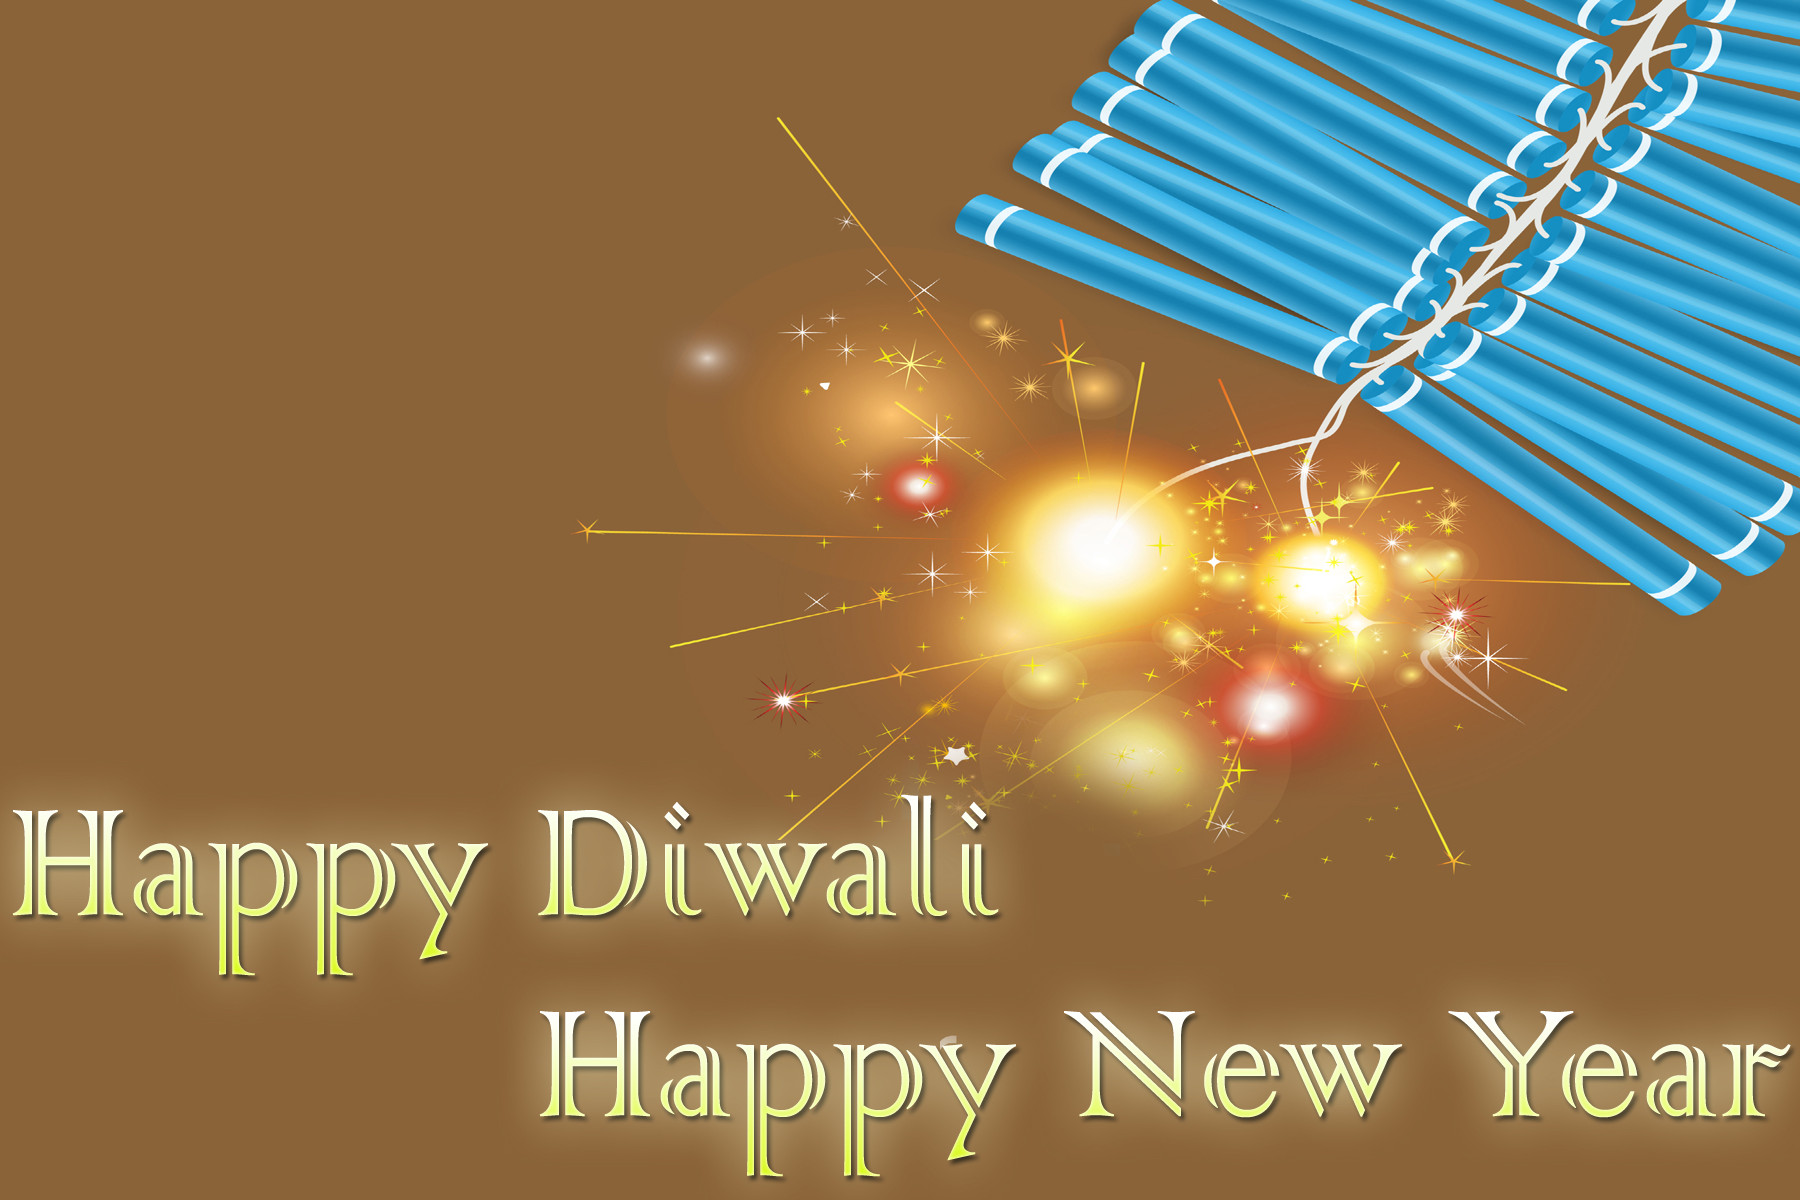 happy diwali happy new year runways rattles happy diwali happy new year